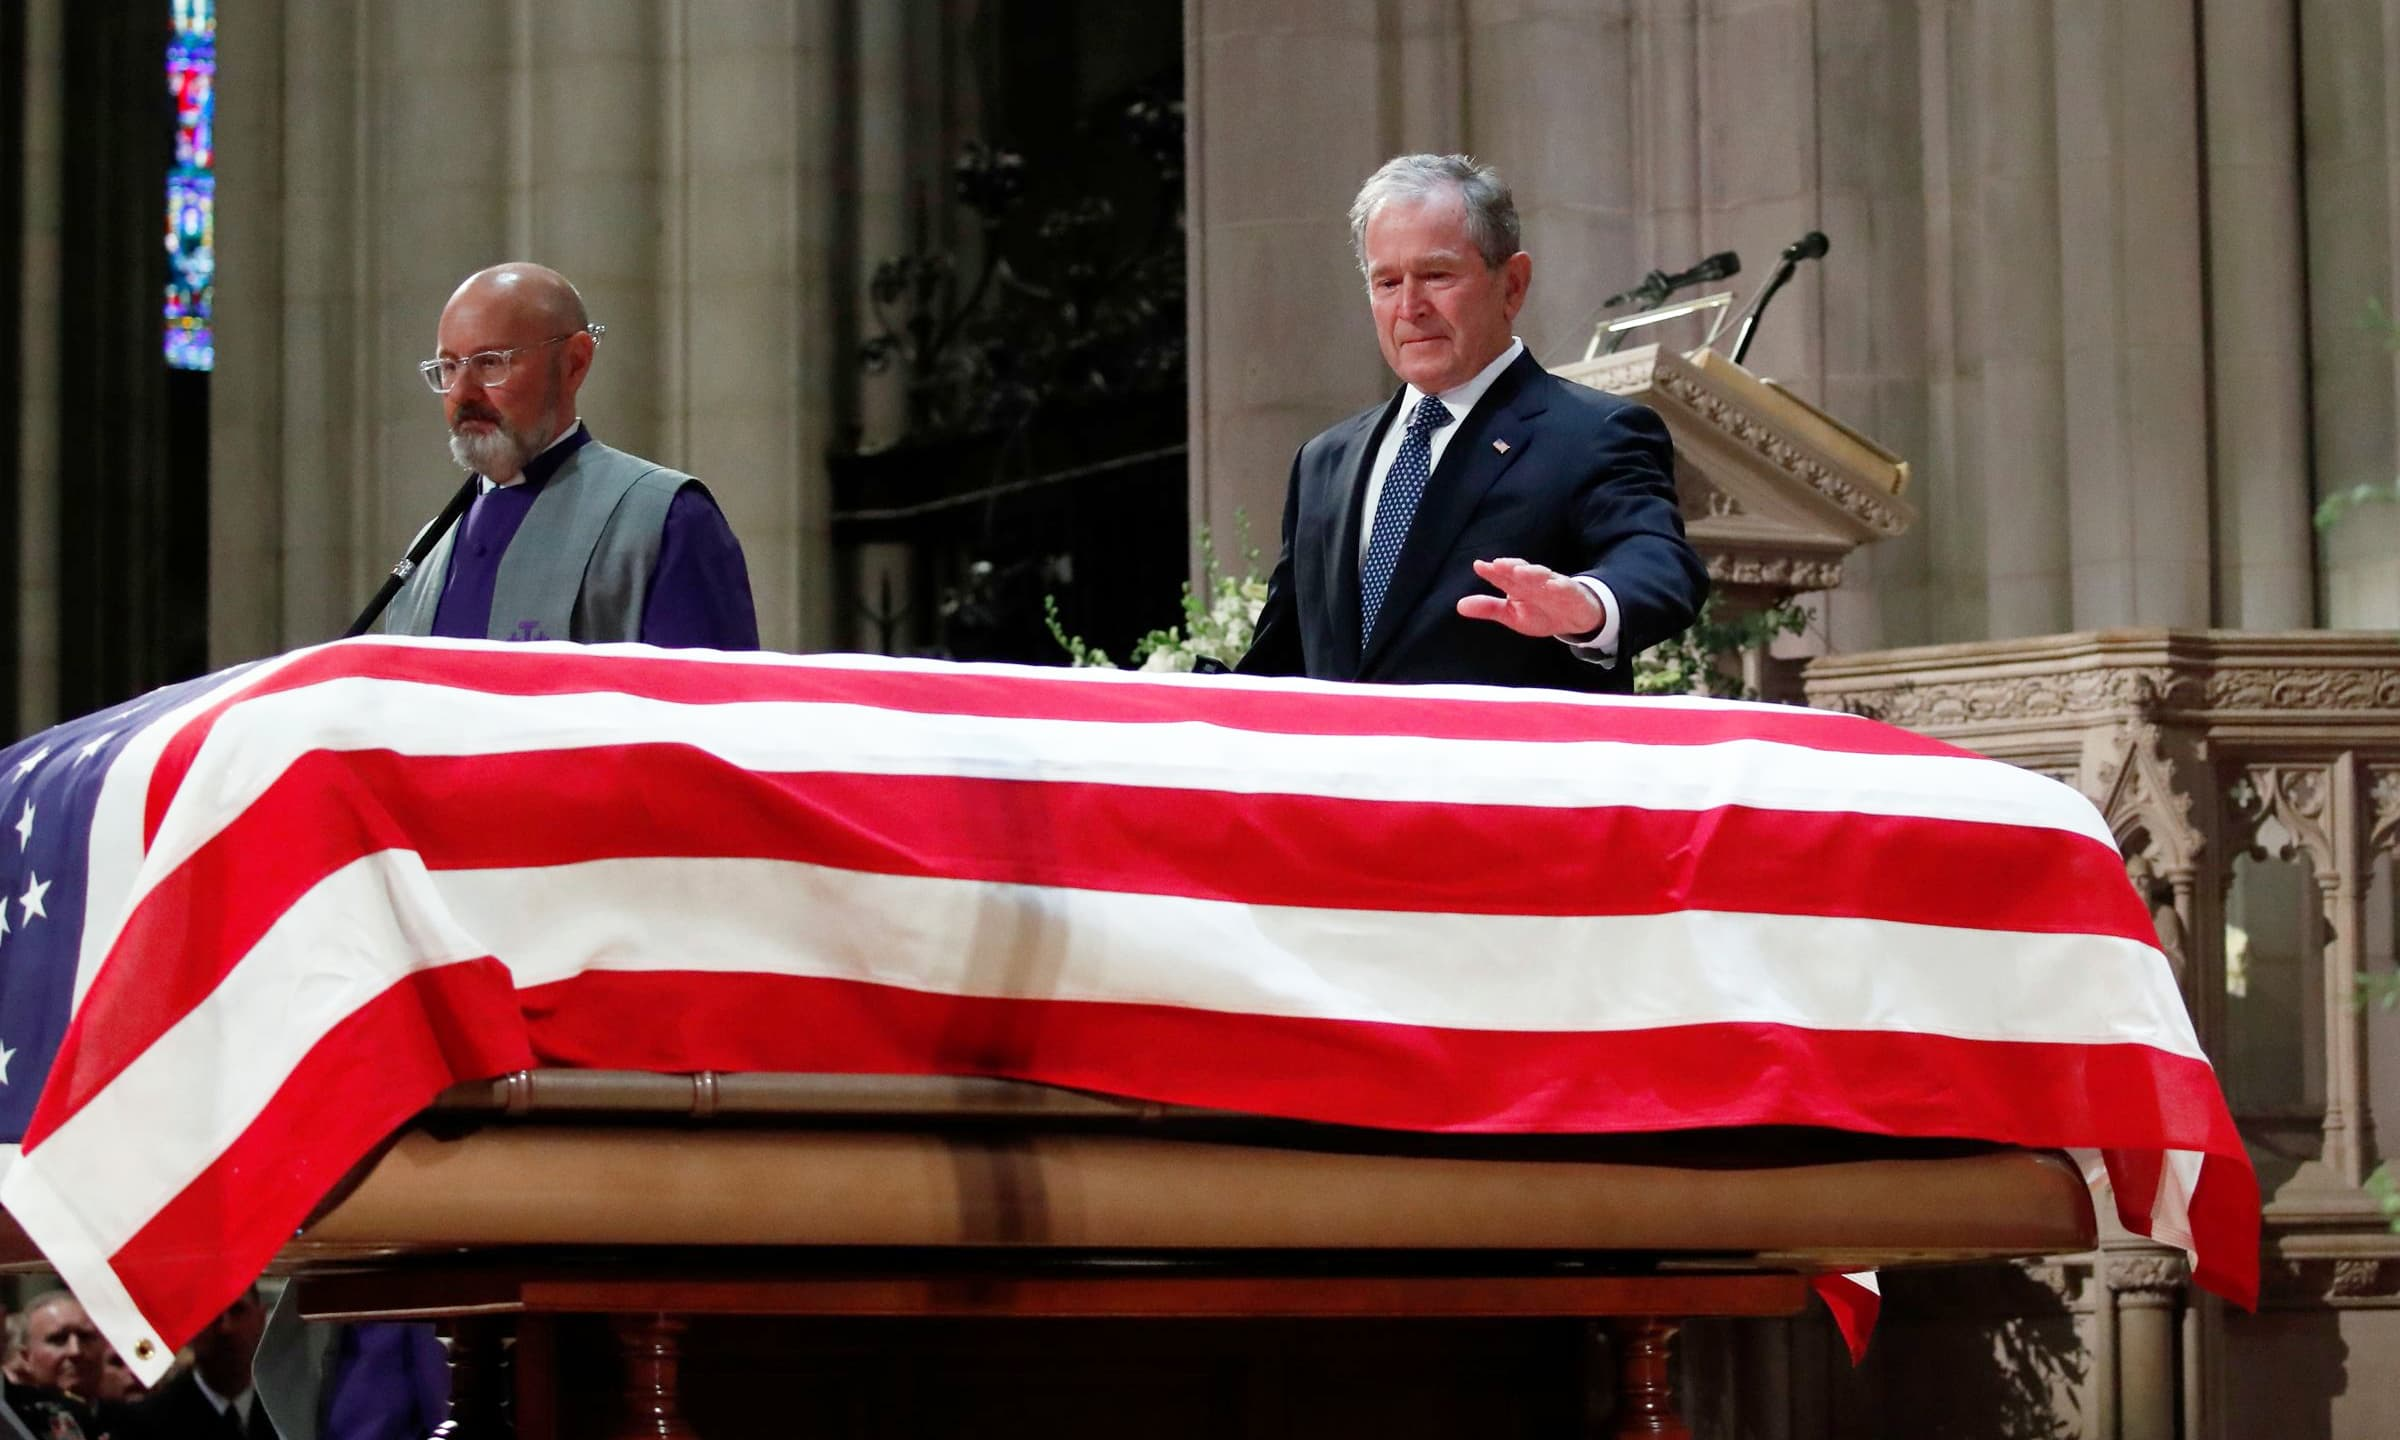 Former US President George W Bush leaves after speaking at the State Funeral for his father. —AFP